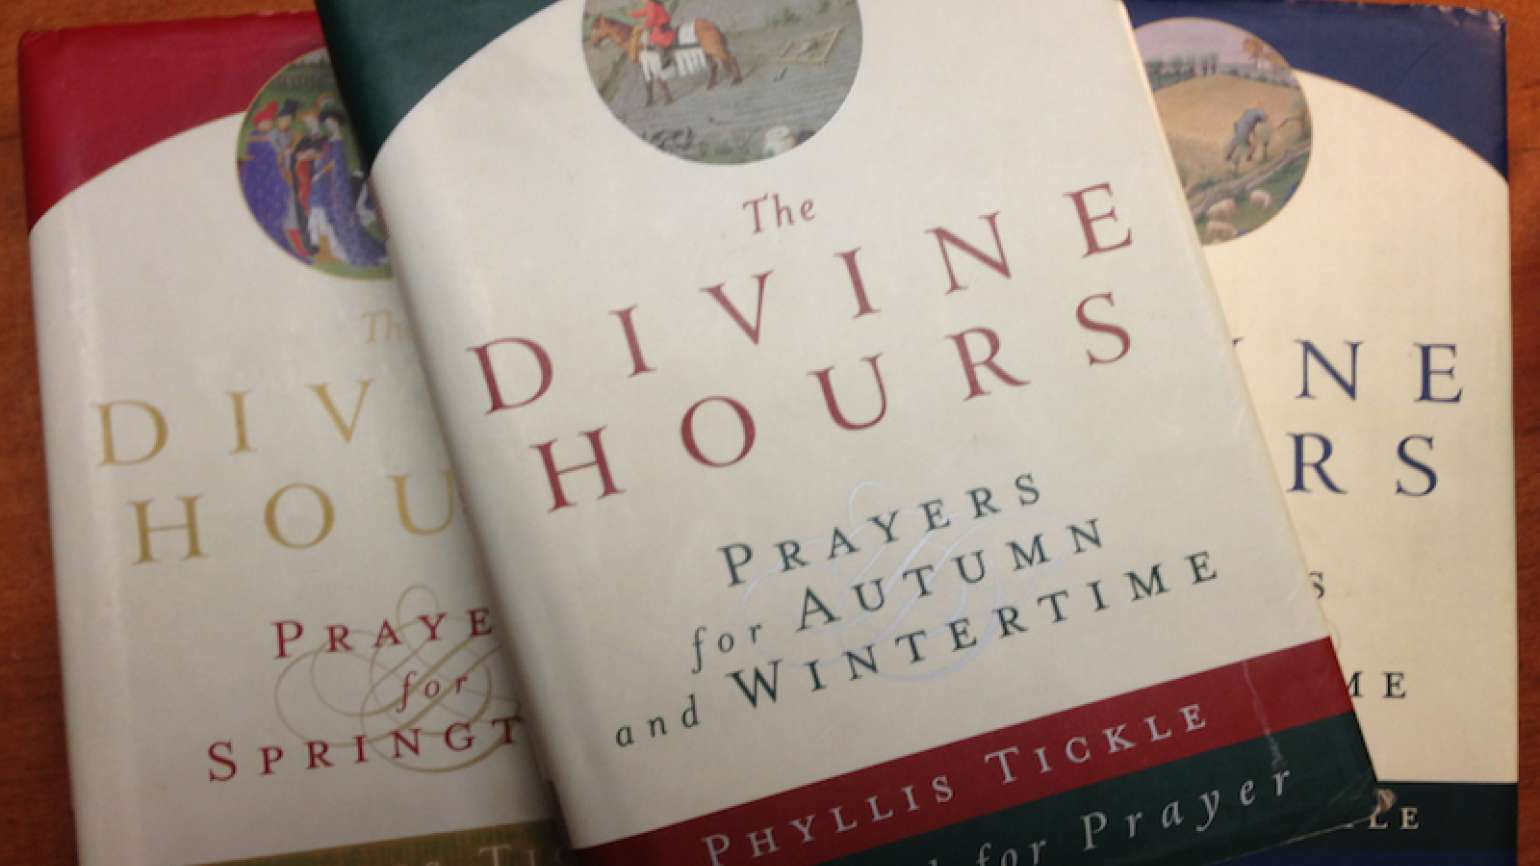 Phyllis Tickle's The Divine Hours offers prayer throughout the day.